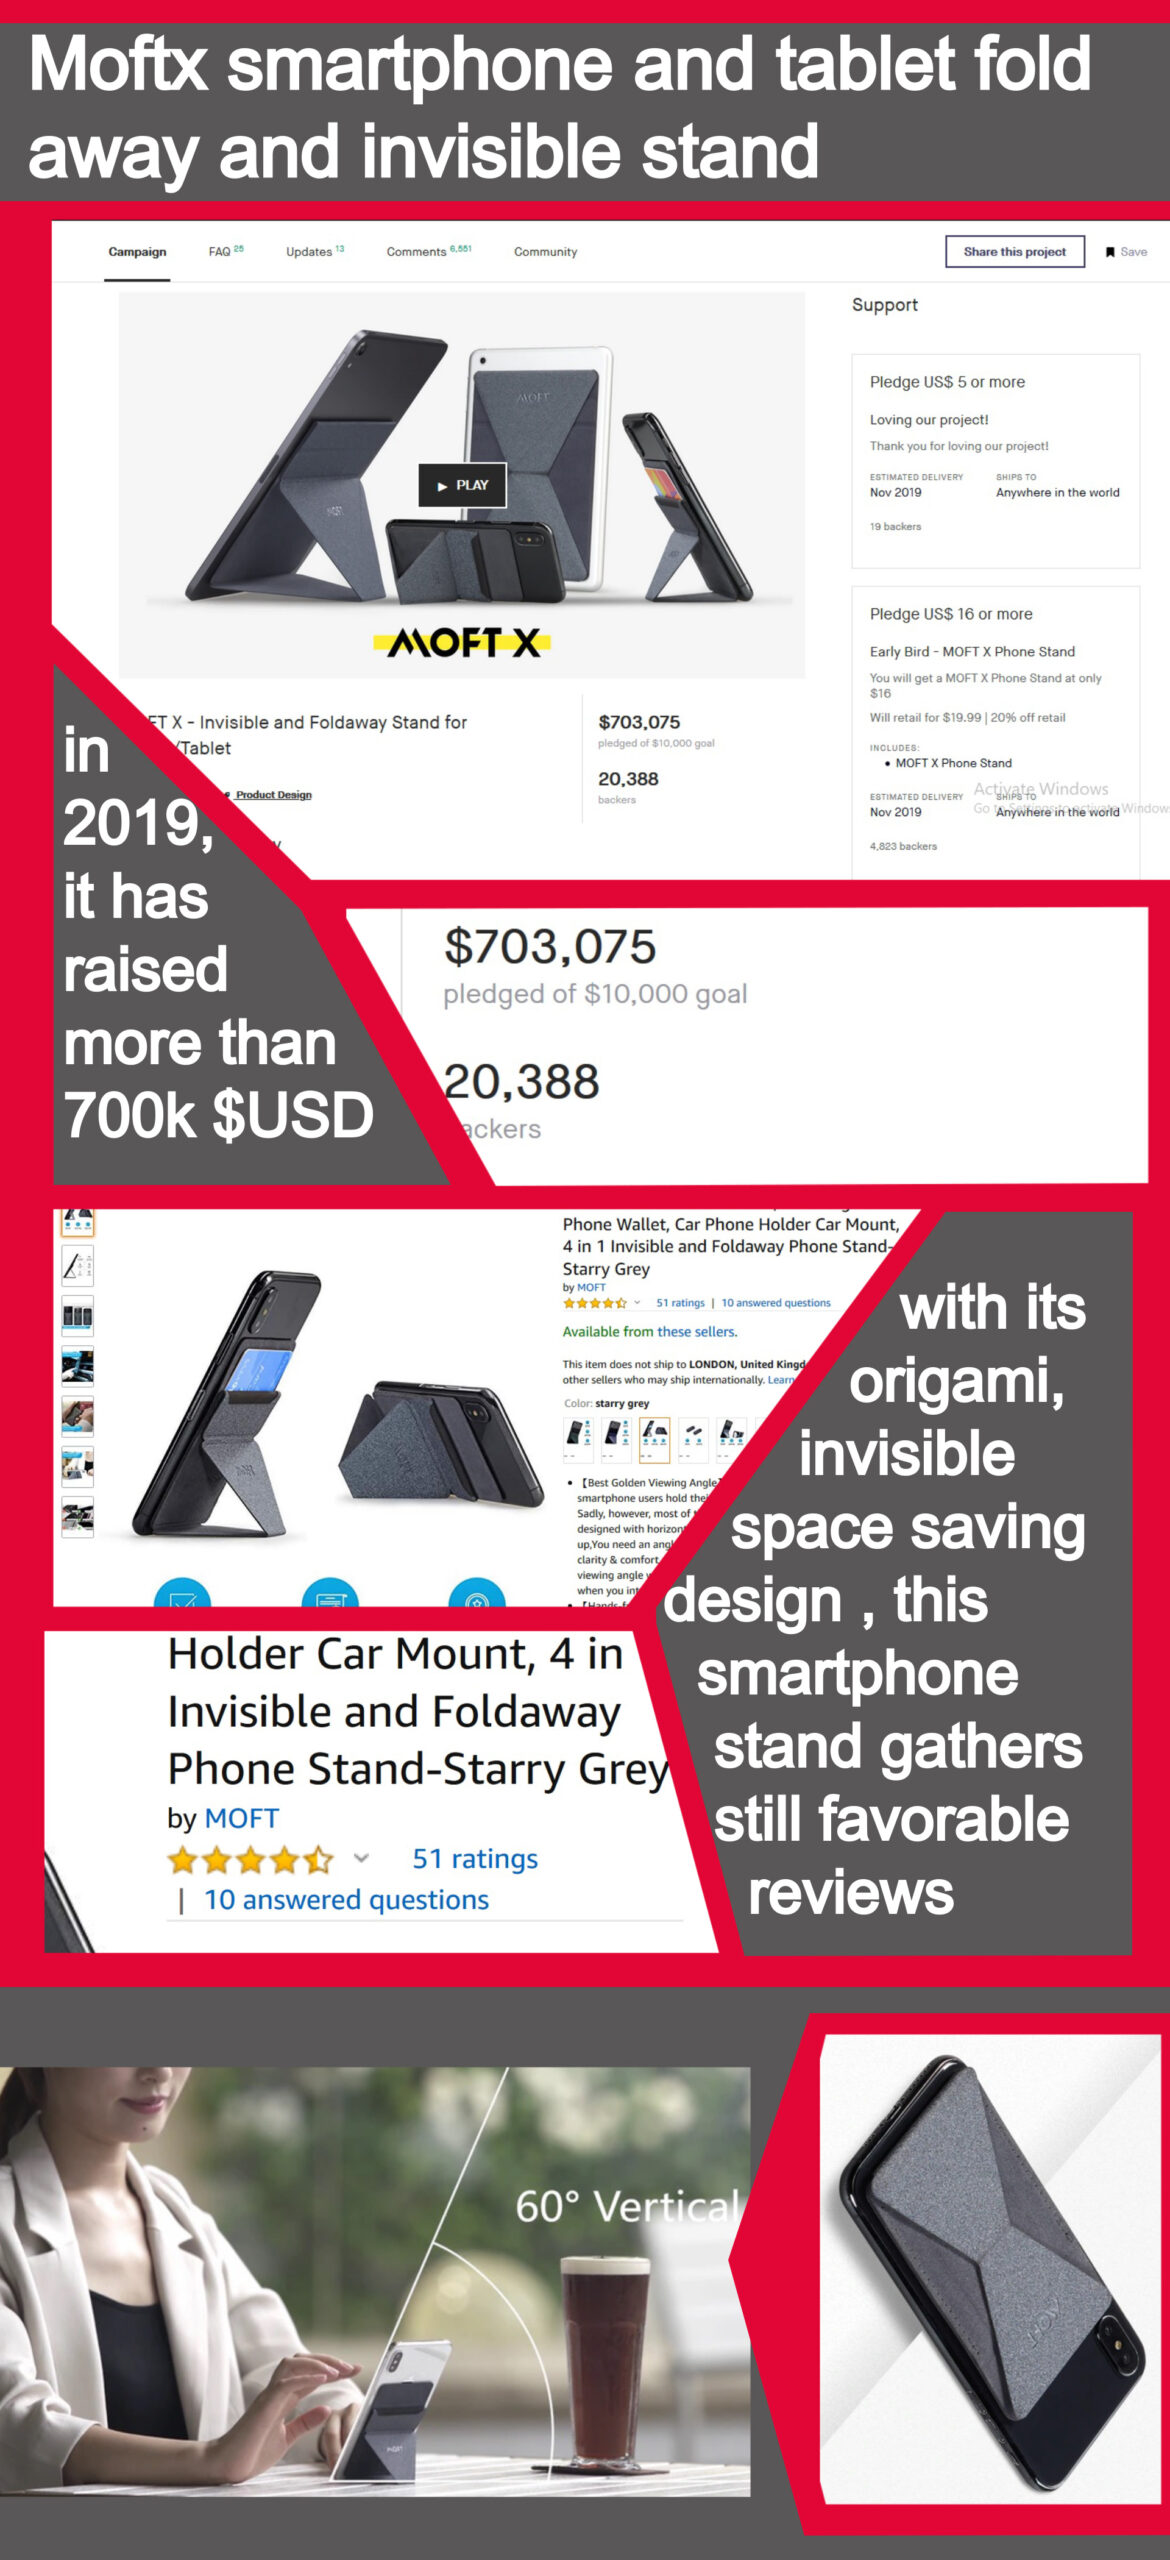 moftx invisible smartphone stand